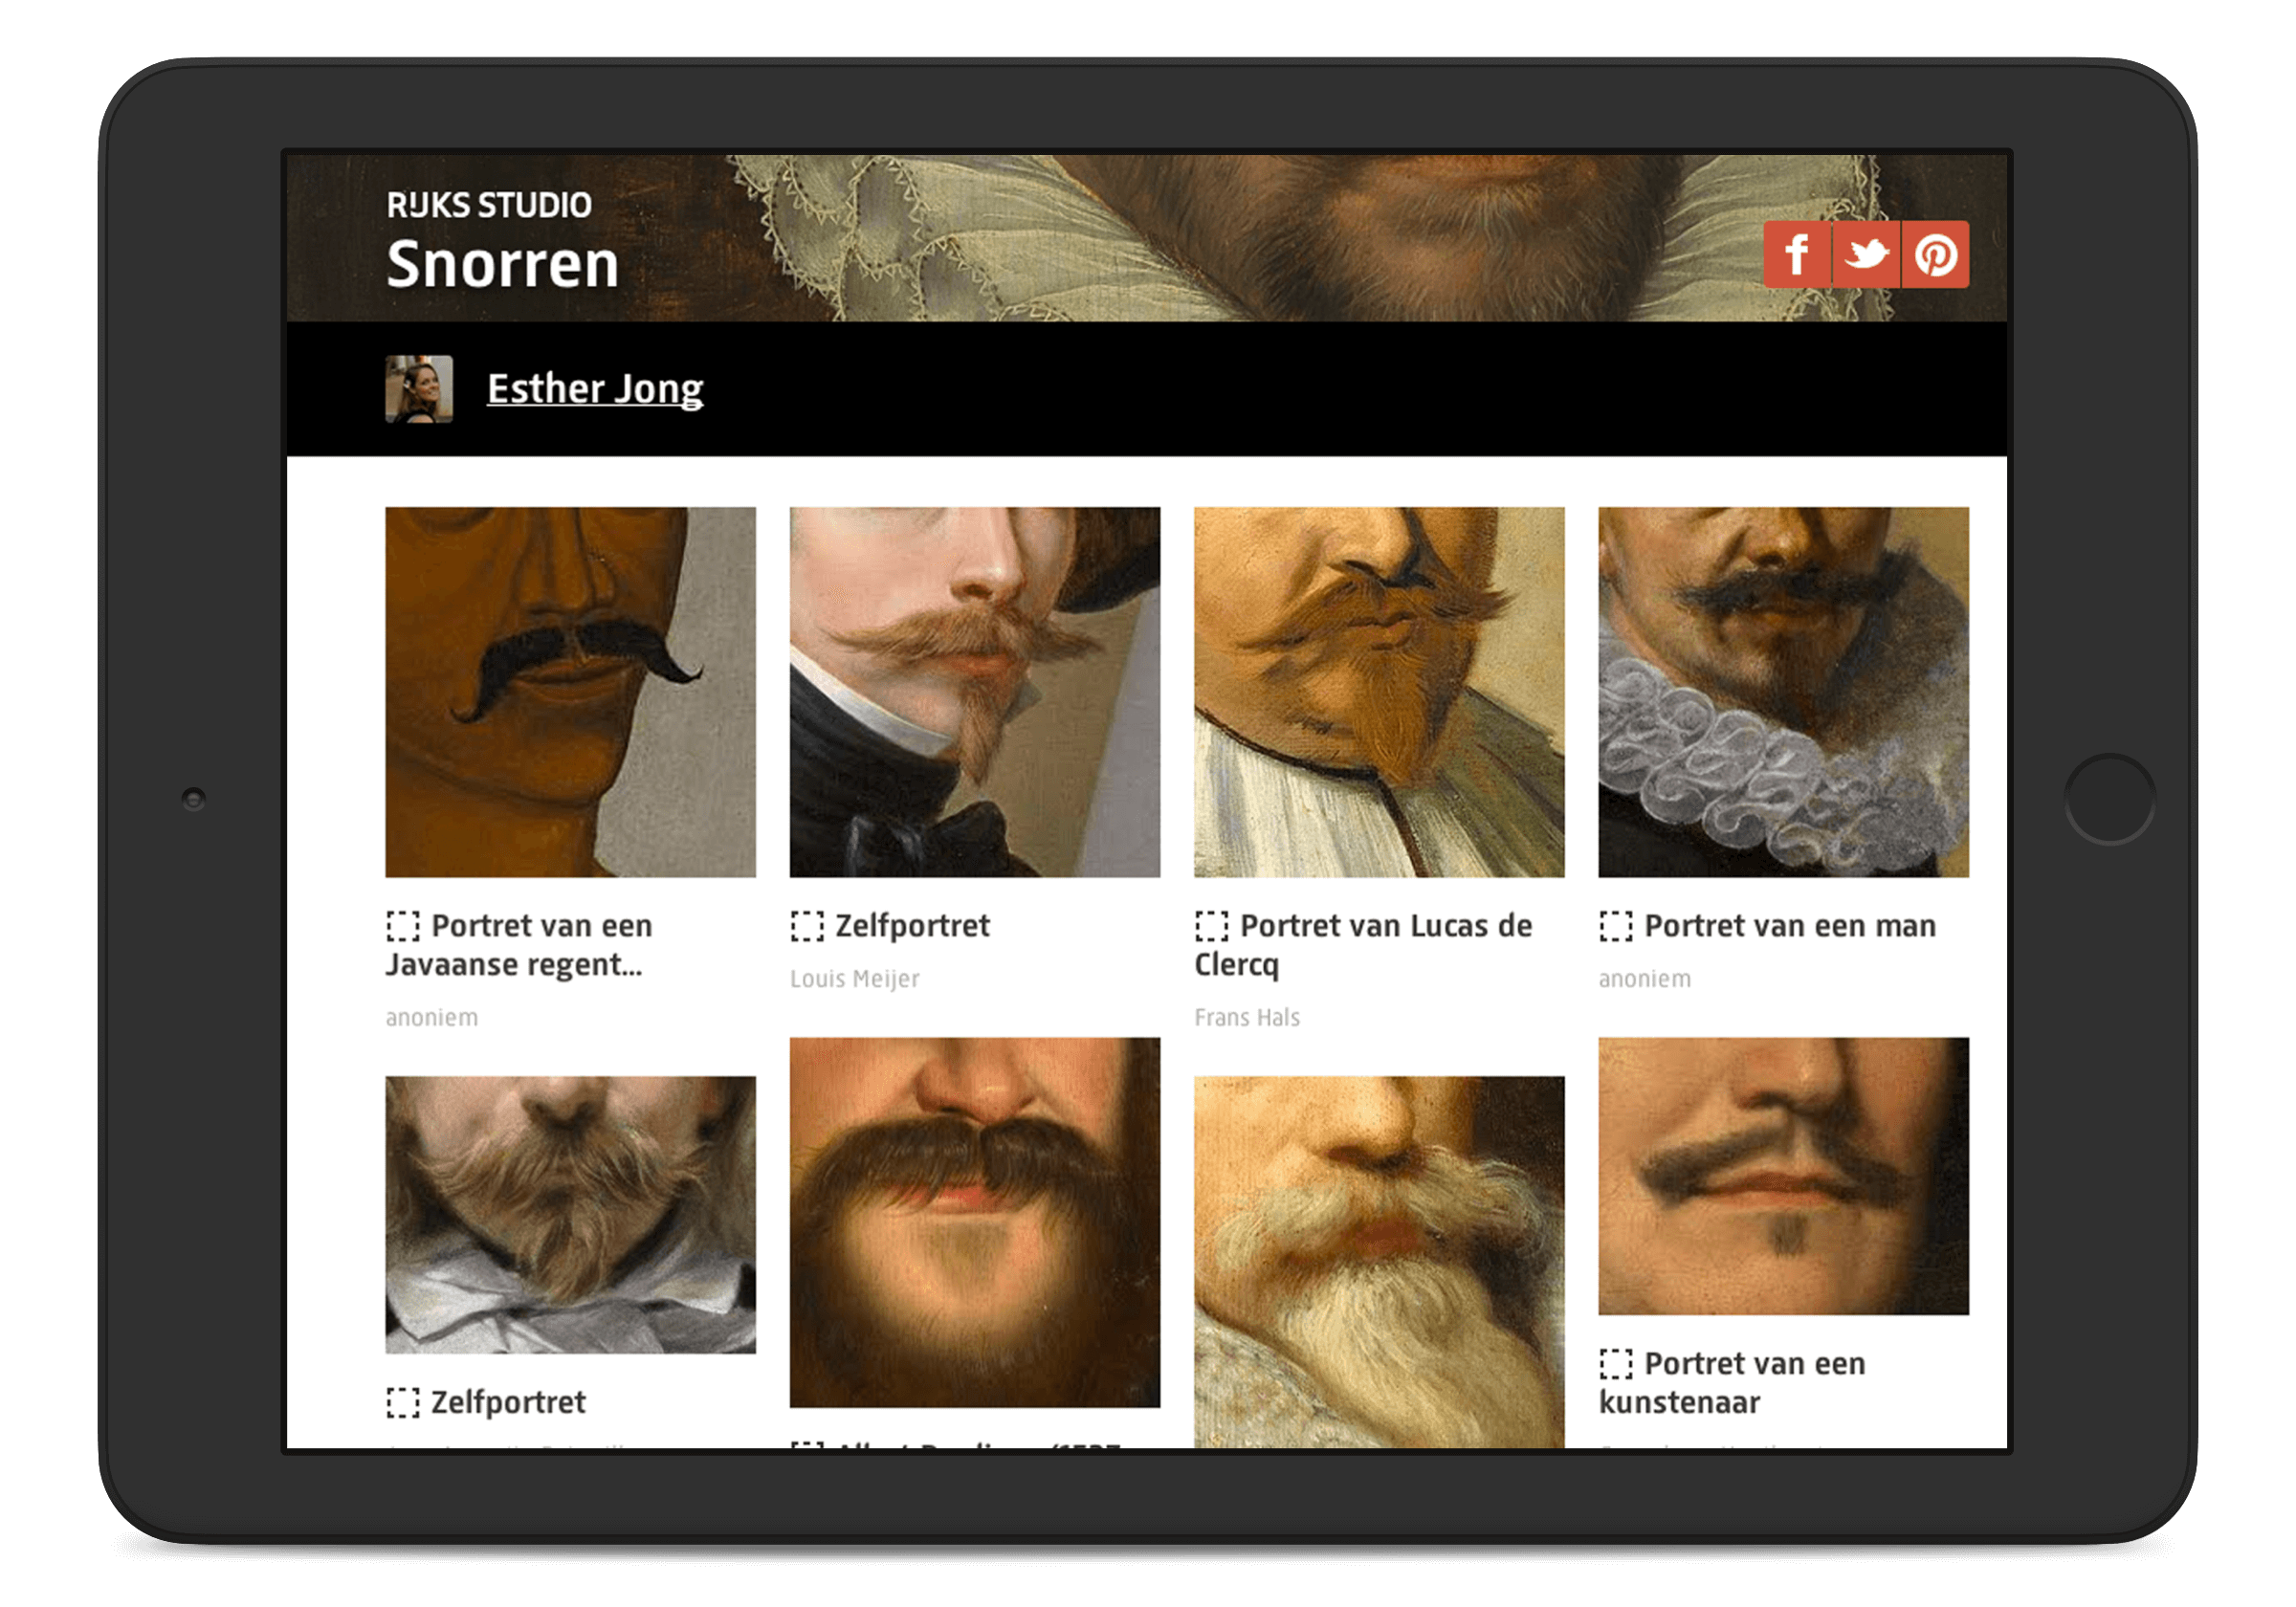 Rijksmuseum website, collection page